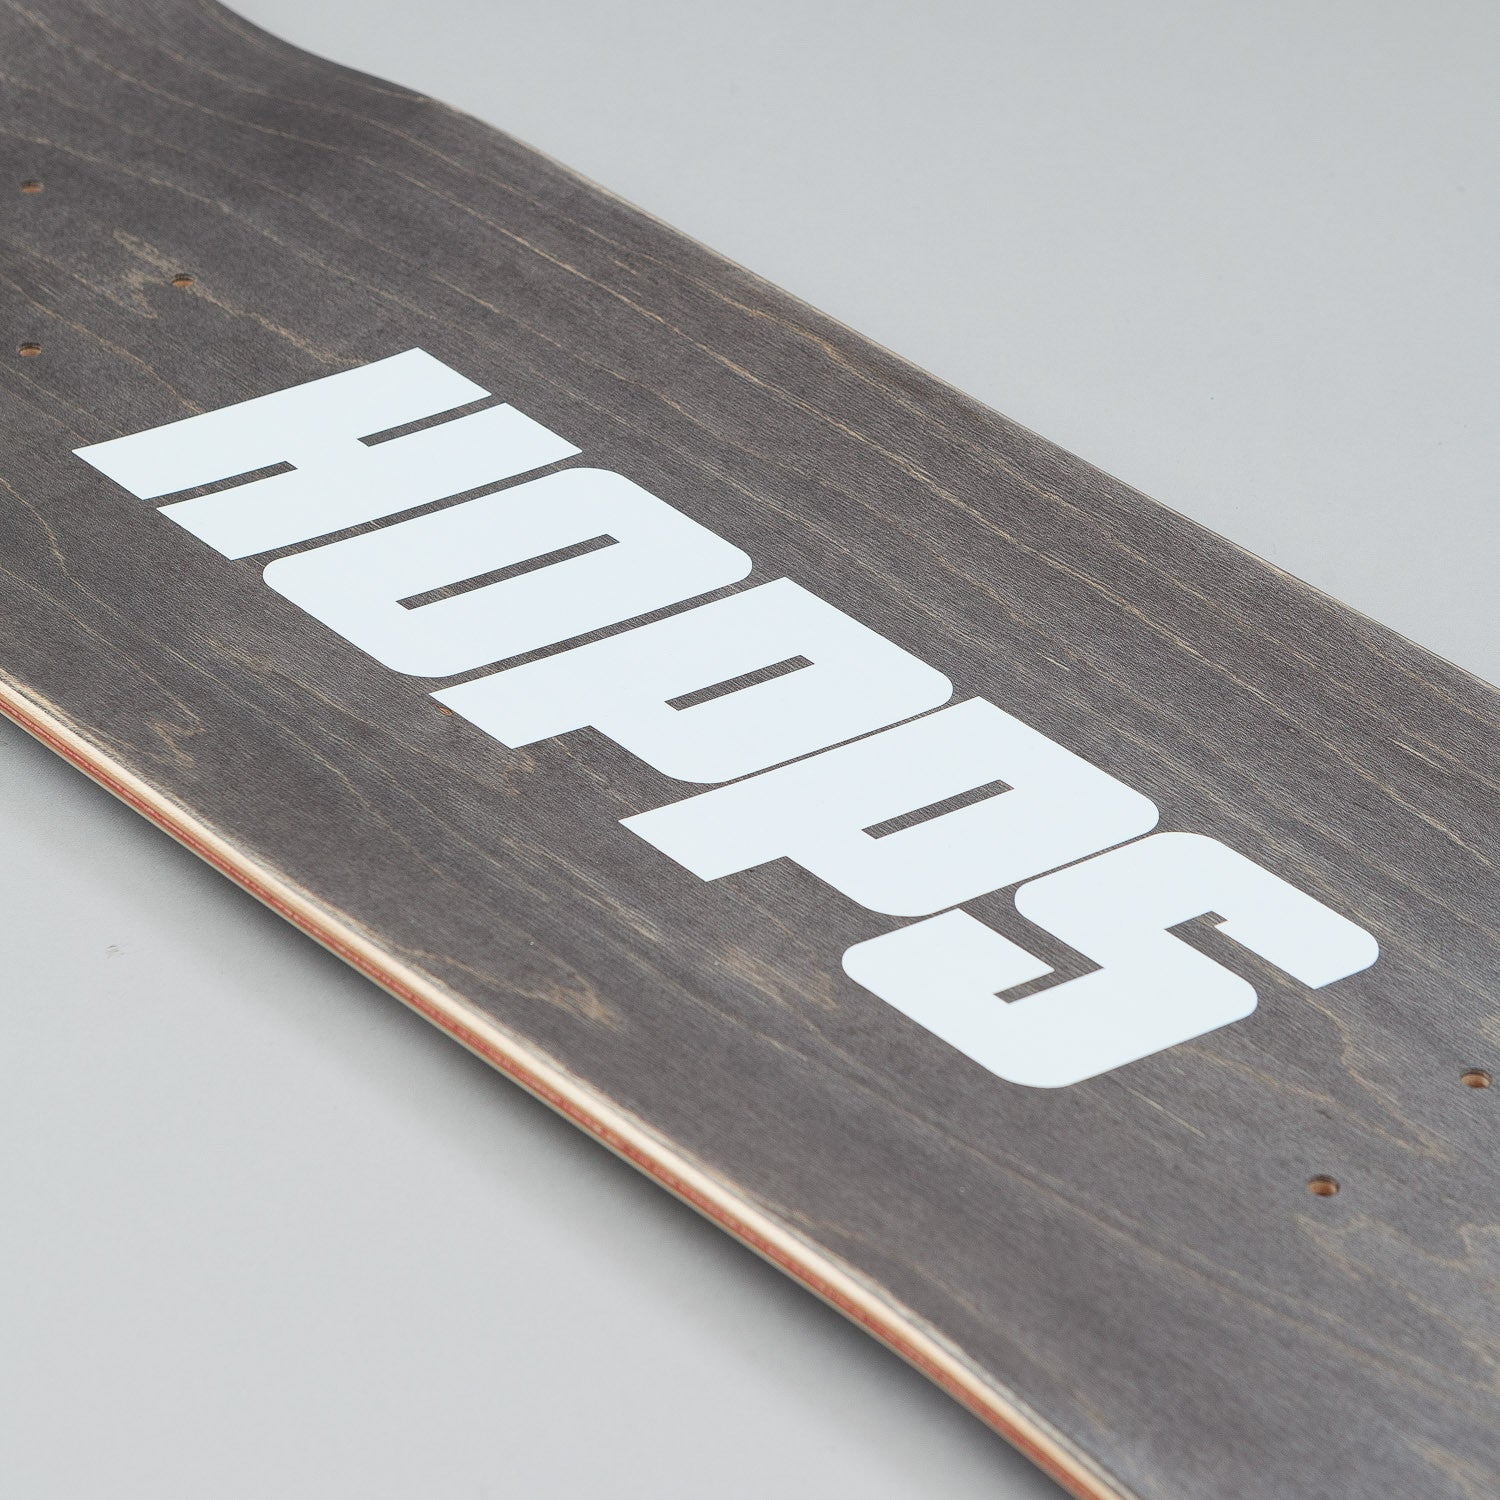 Hopps Concrete Jungle Deck 2 of 2 - 8.5""